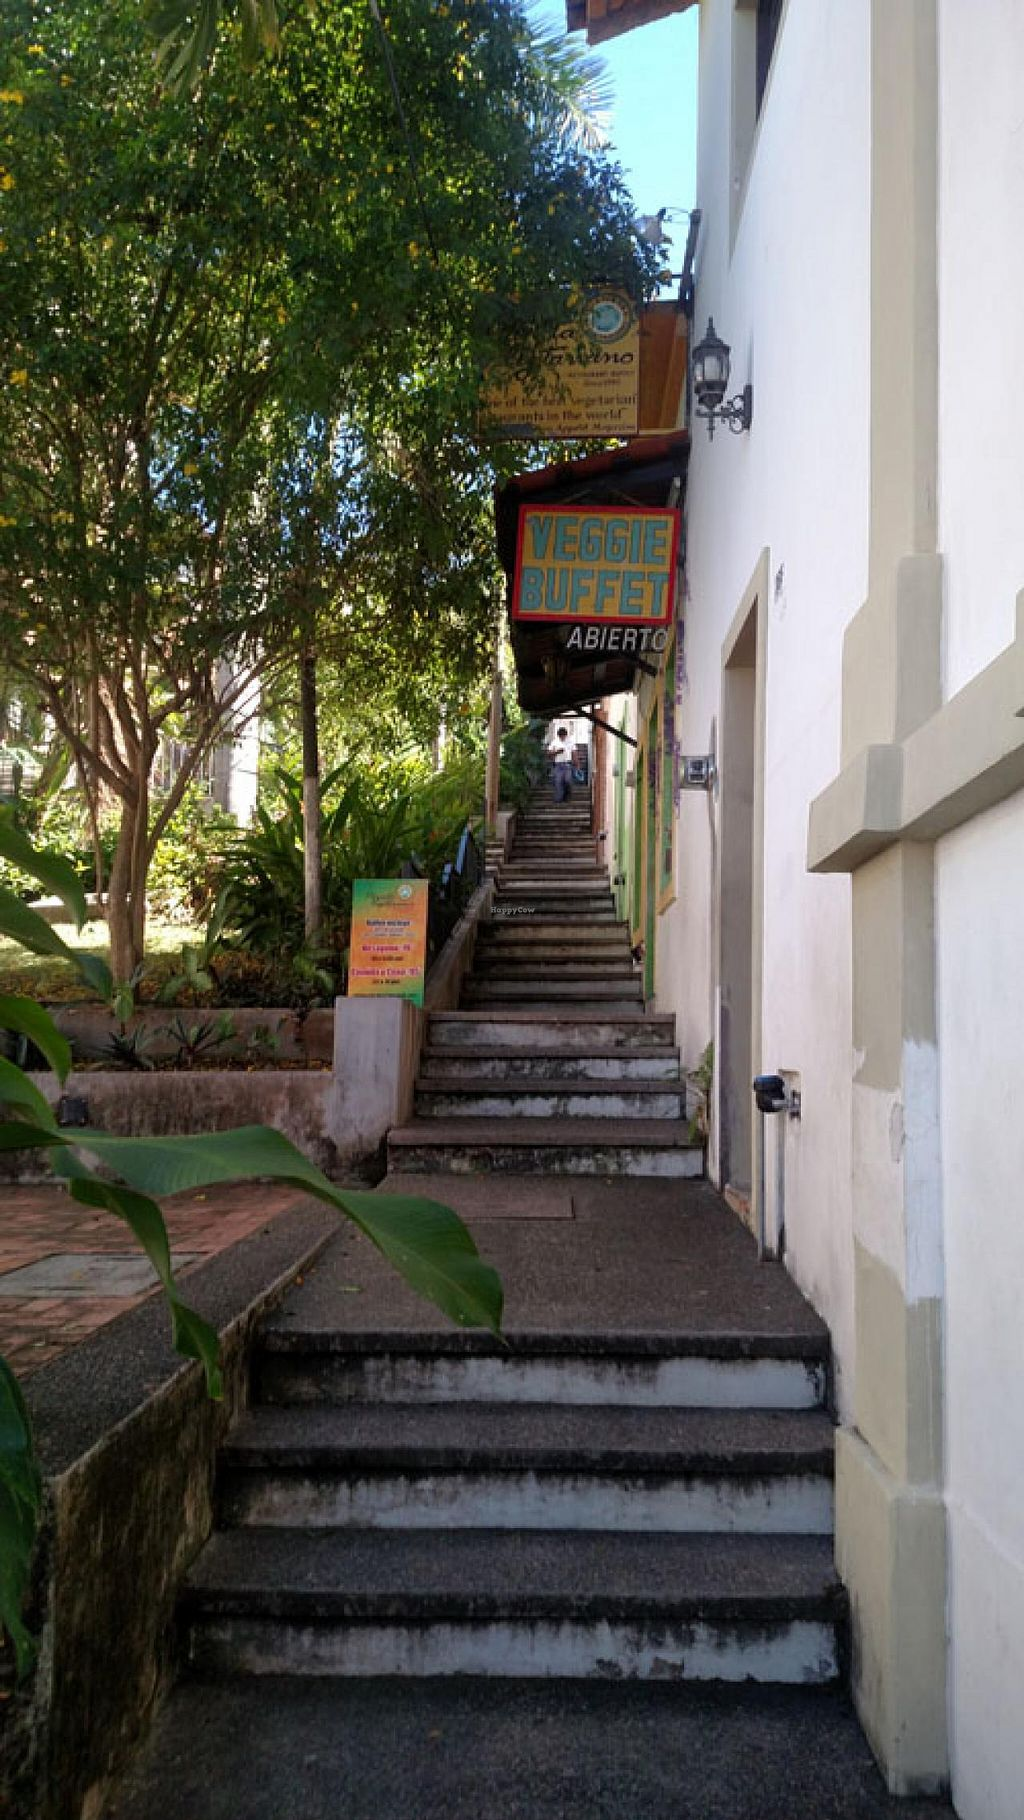 "Photo of Planeta Vegetariano  by <a href=""/members/profile/blaineb"">blaineb</a> <br/>Exterior image, coming up the street stairs towards entrance. (tough to find if coming from above) <br/> February 5, 2015  - <a href='/contact/abuse/image/1436/92271'>Report</a>"